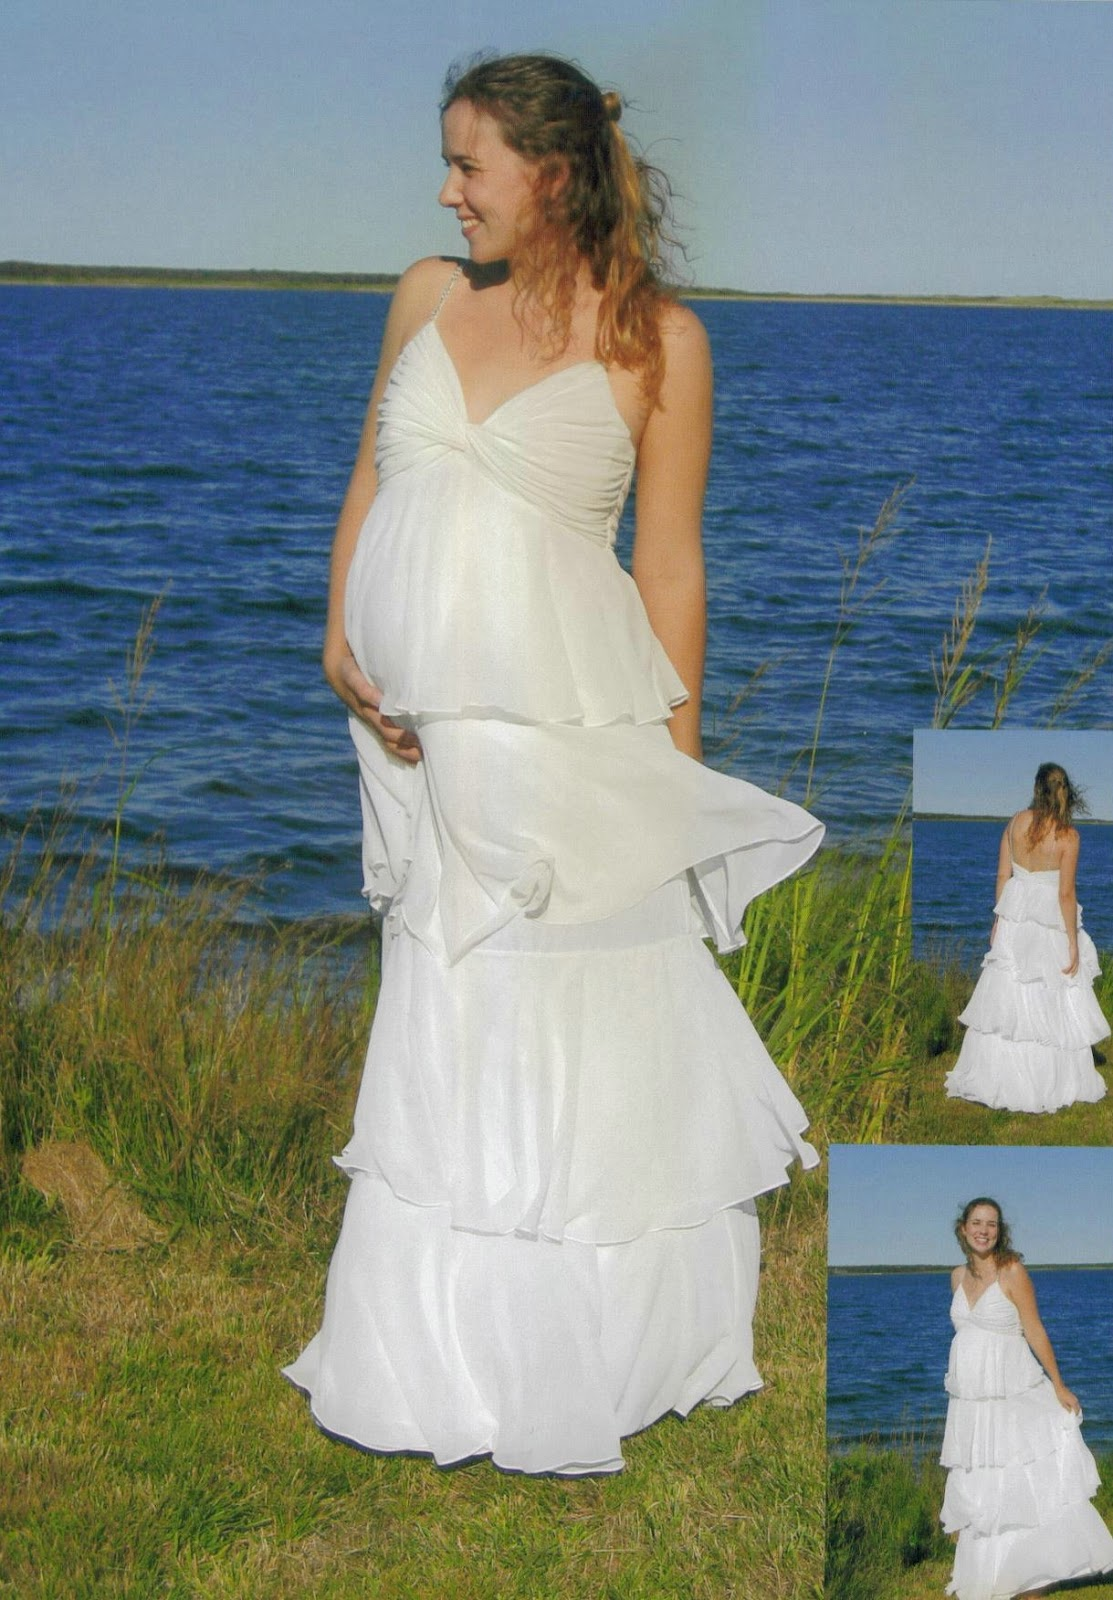 WhiteAzalea Maternity Dresses Are You Ready for a Maternity Autumn Wedding